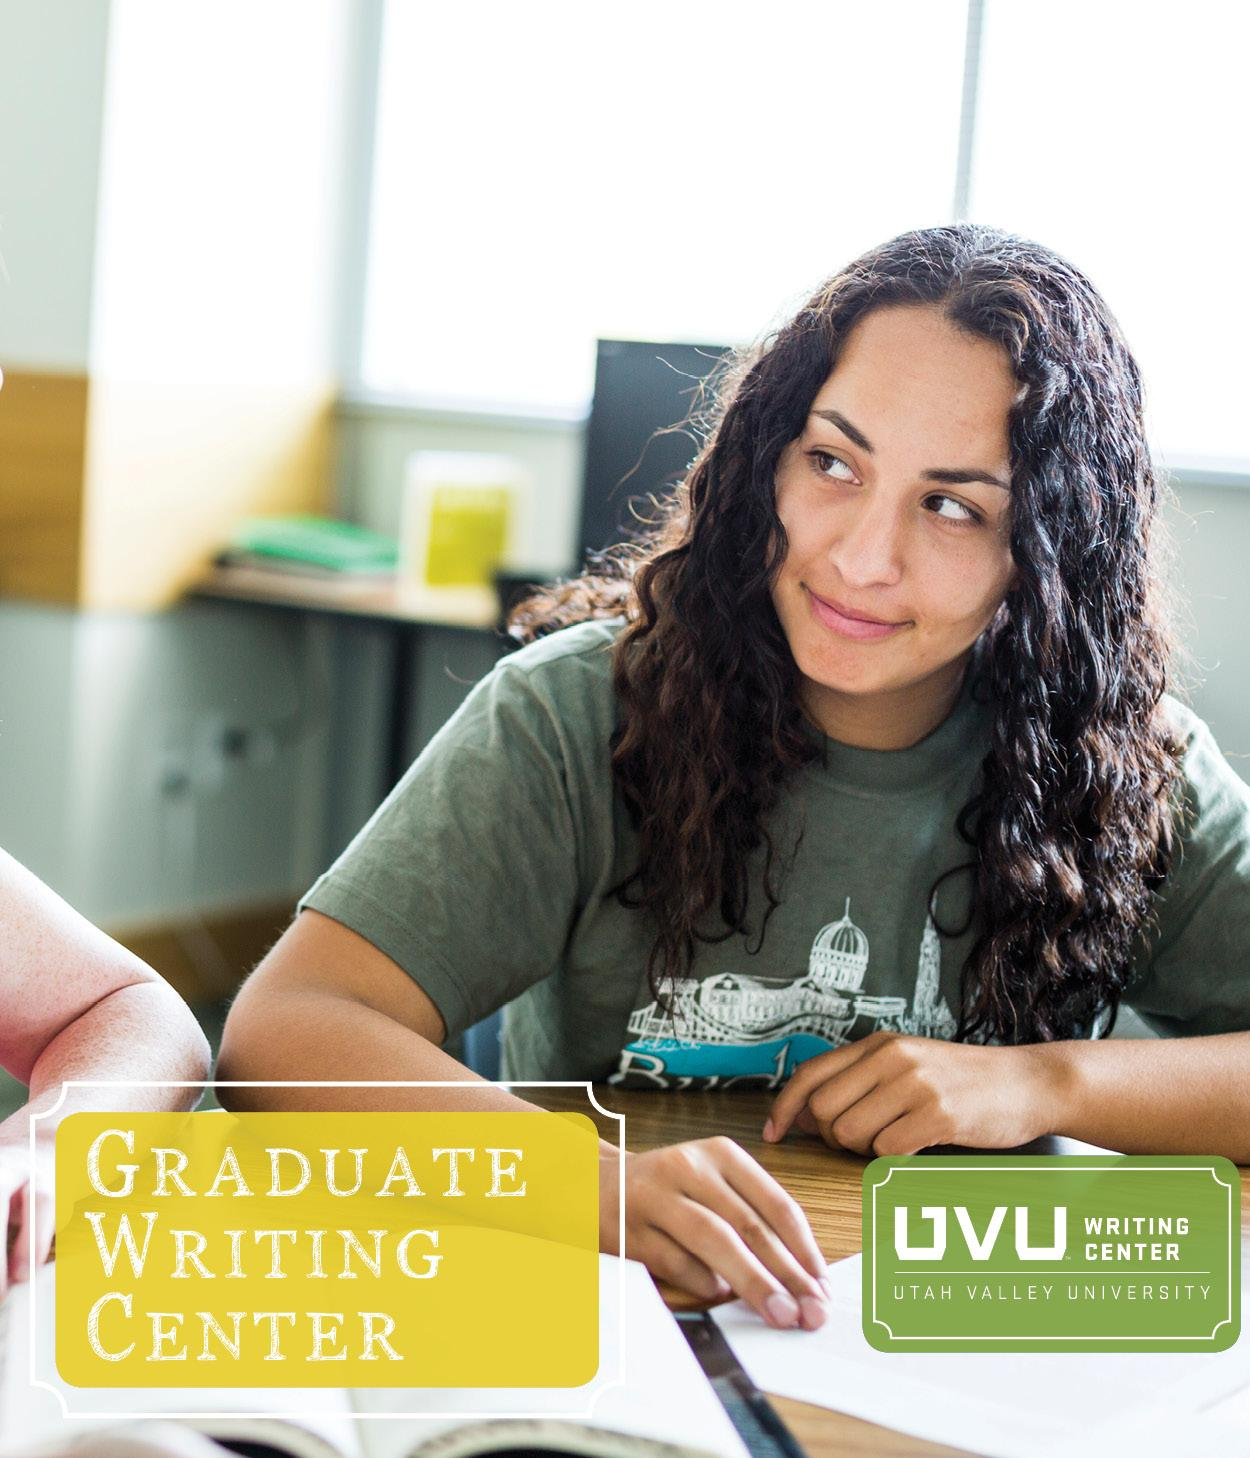 Image of student being tutoredLink to Graduate Writing Center page